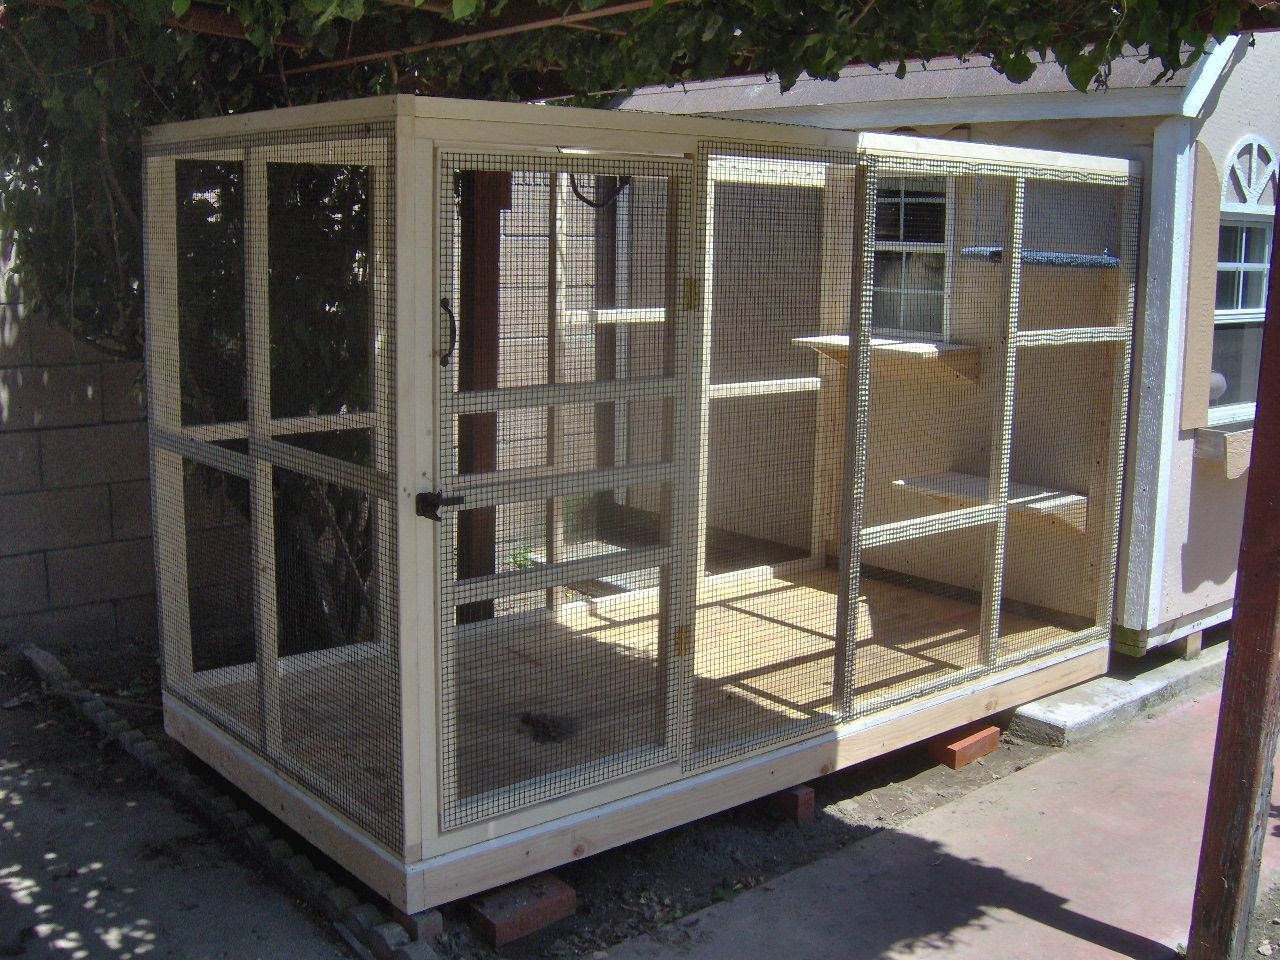 Attached home enclosure for cats. Cat enclosure, Outdoor